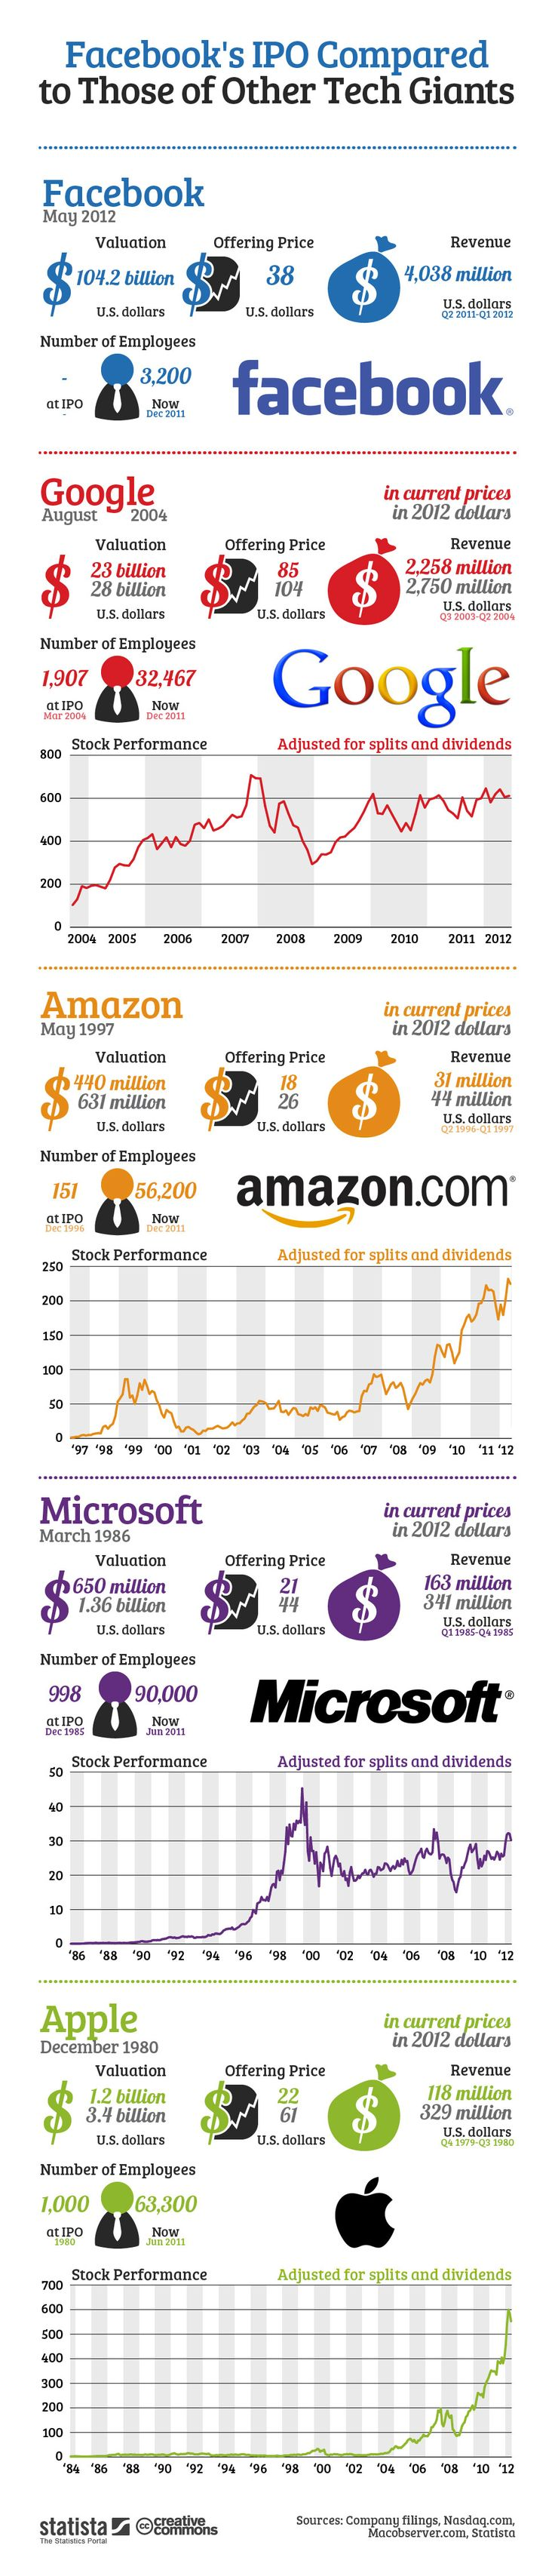 Facebook's IPO Compared To Those Of Other Tech Giants [INFOGRAPHIC]